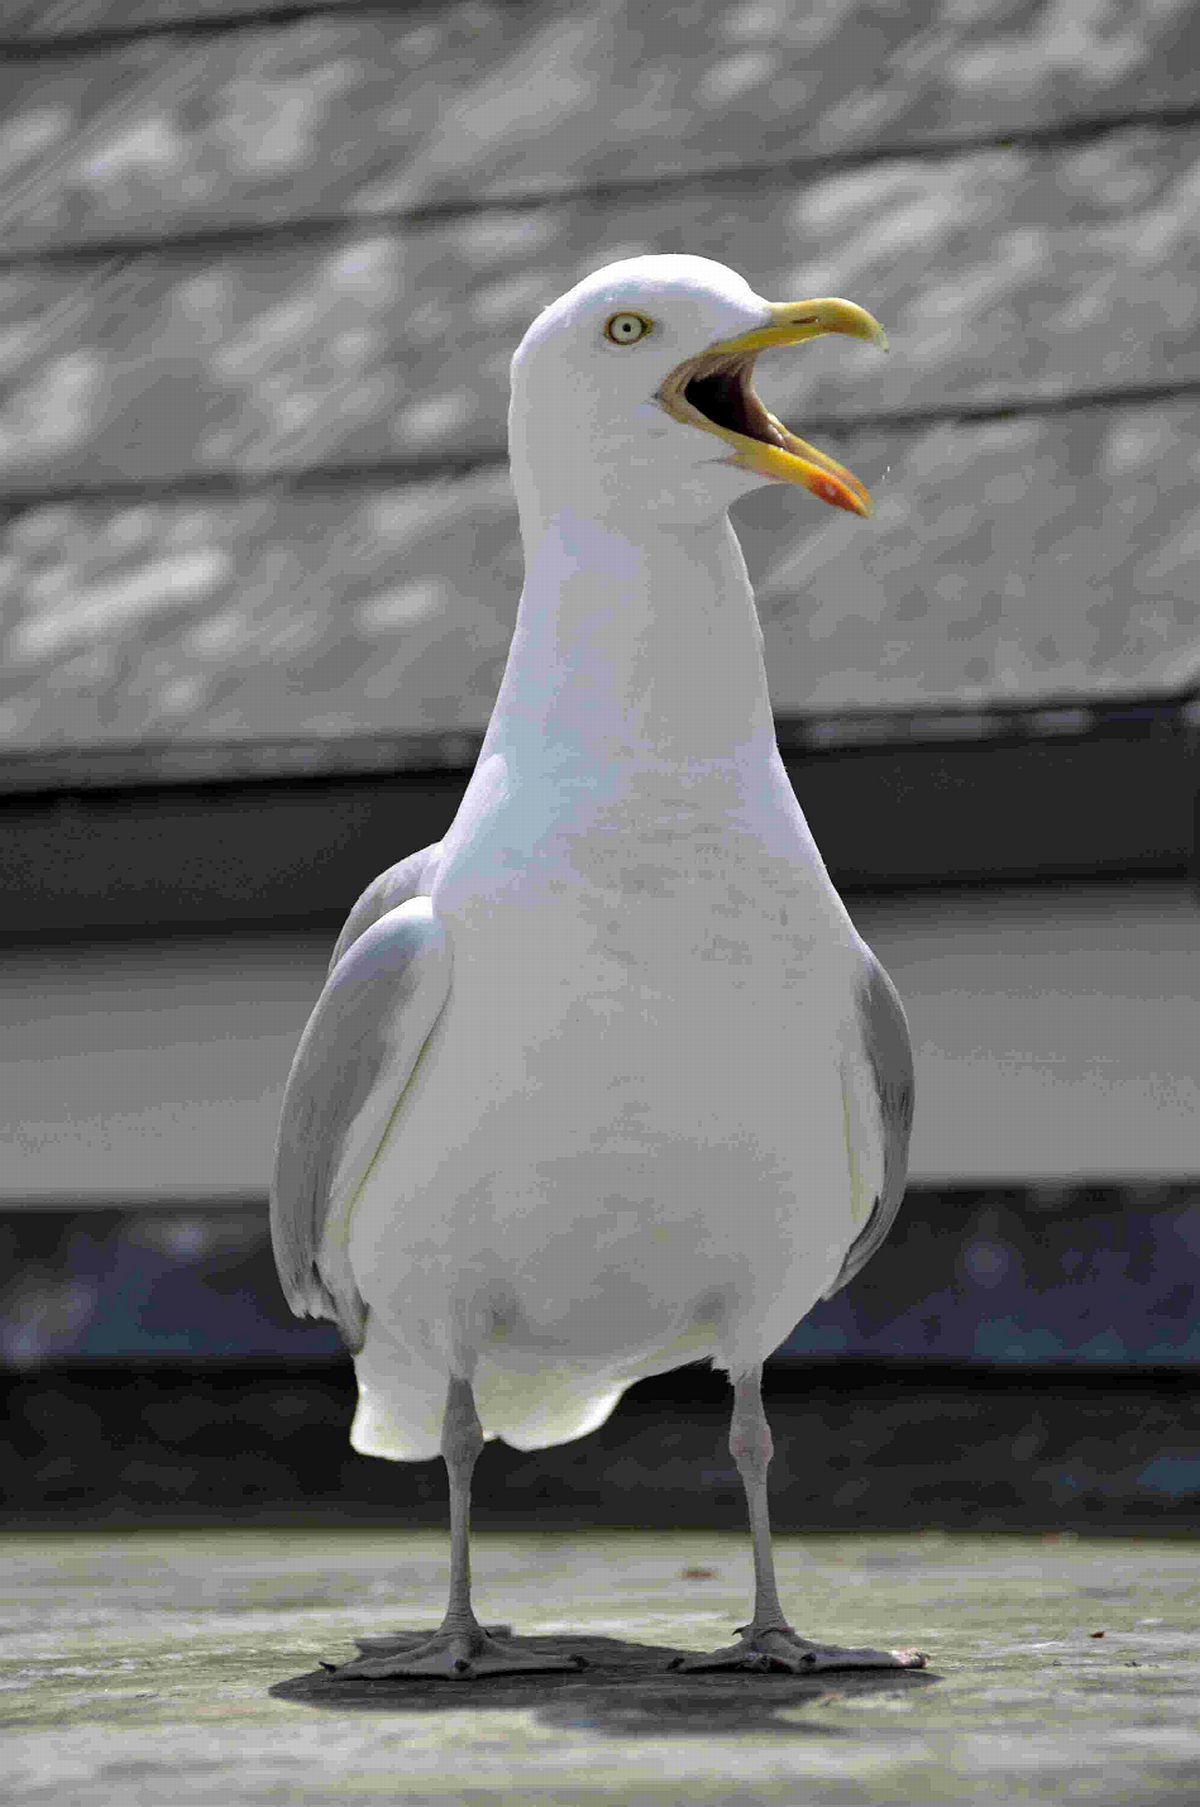 It may steal your pasty, but herring gulls are protected warn police